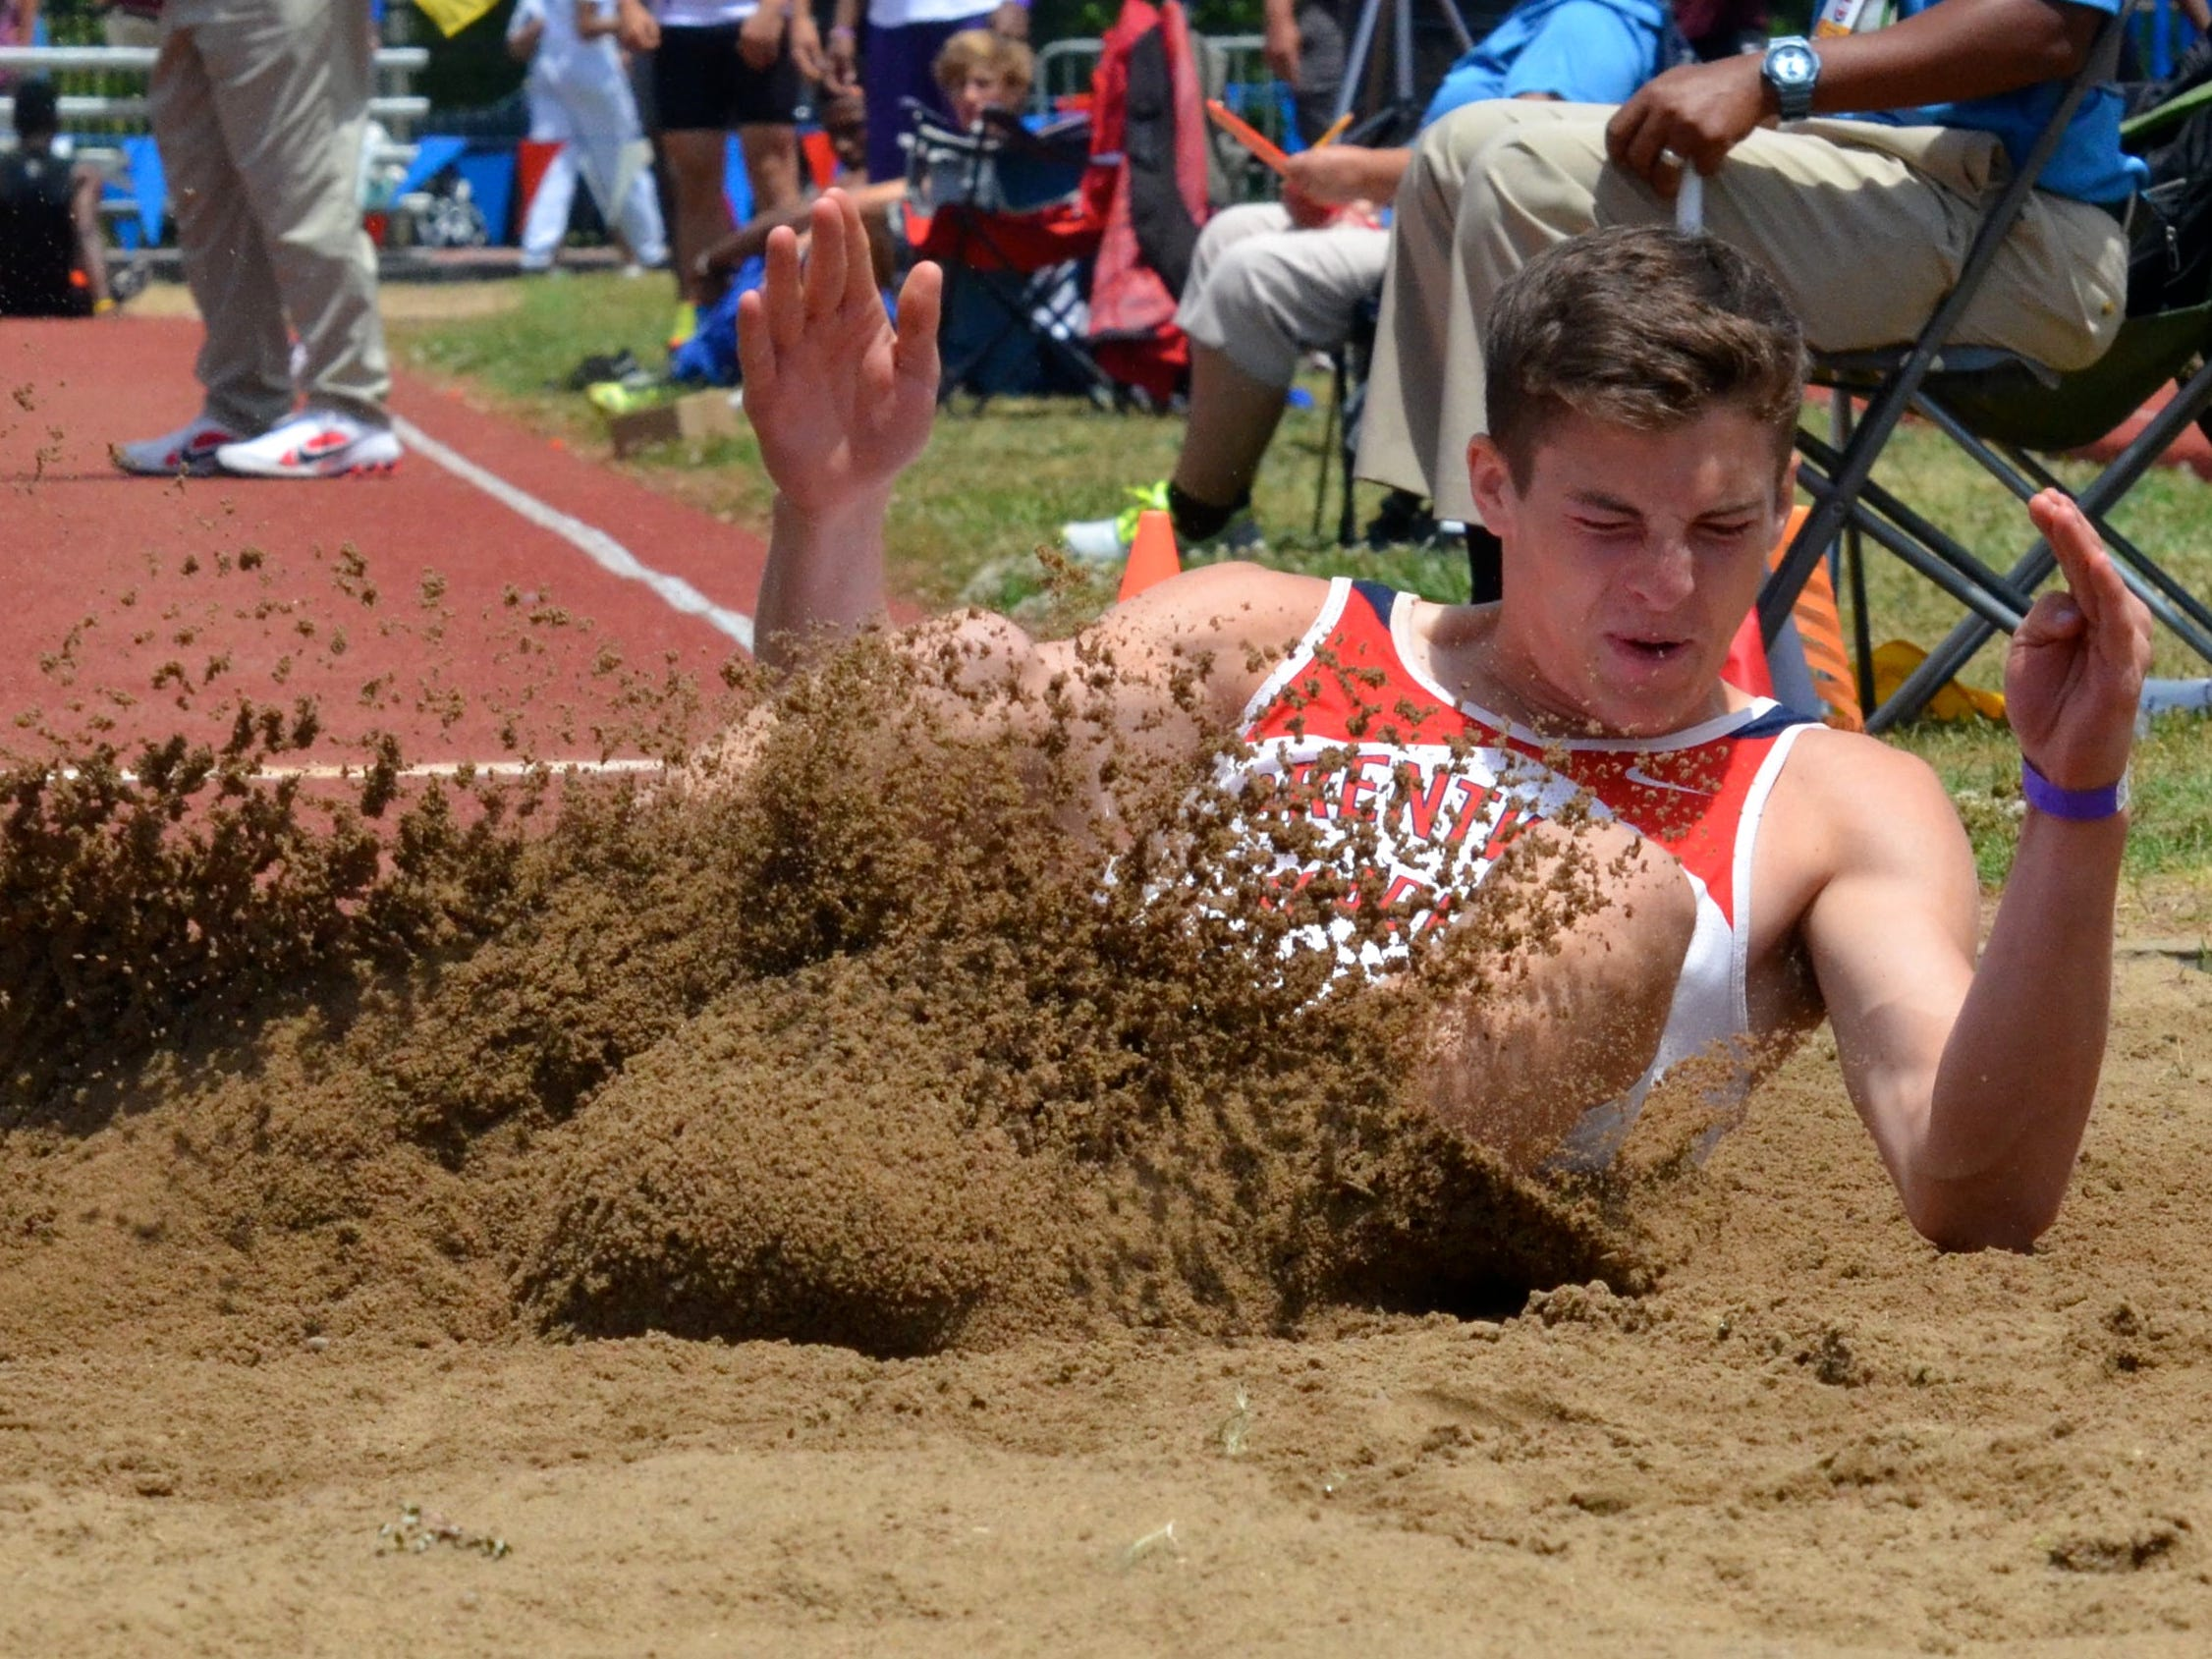 Brentwood Academy's George Patrick won five Division II events, including the long jump and triple jump on Friday.